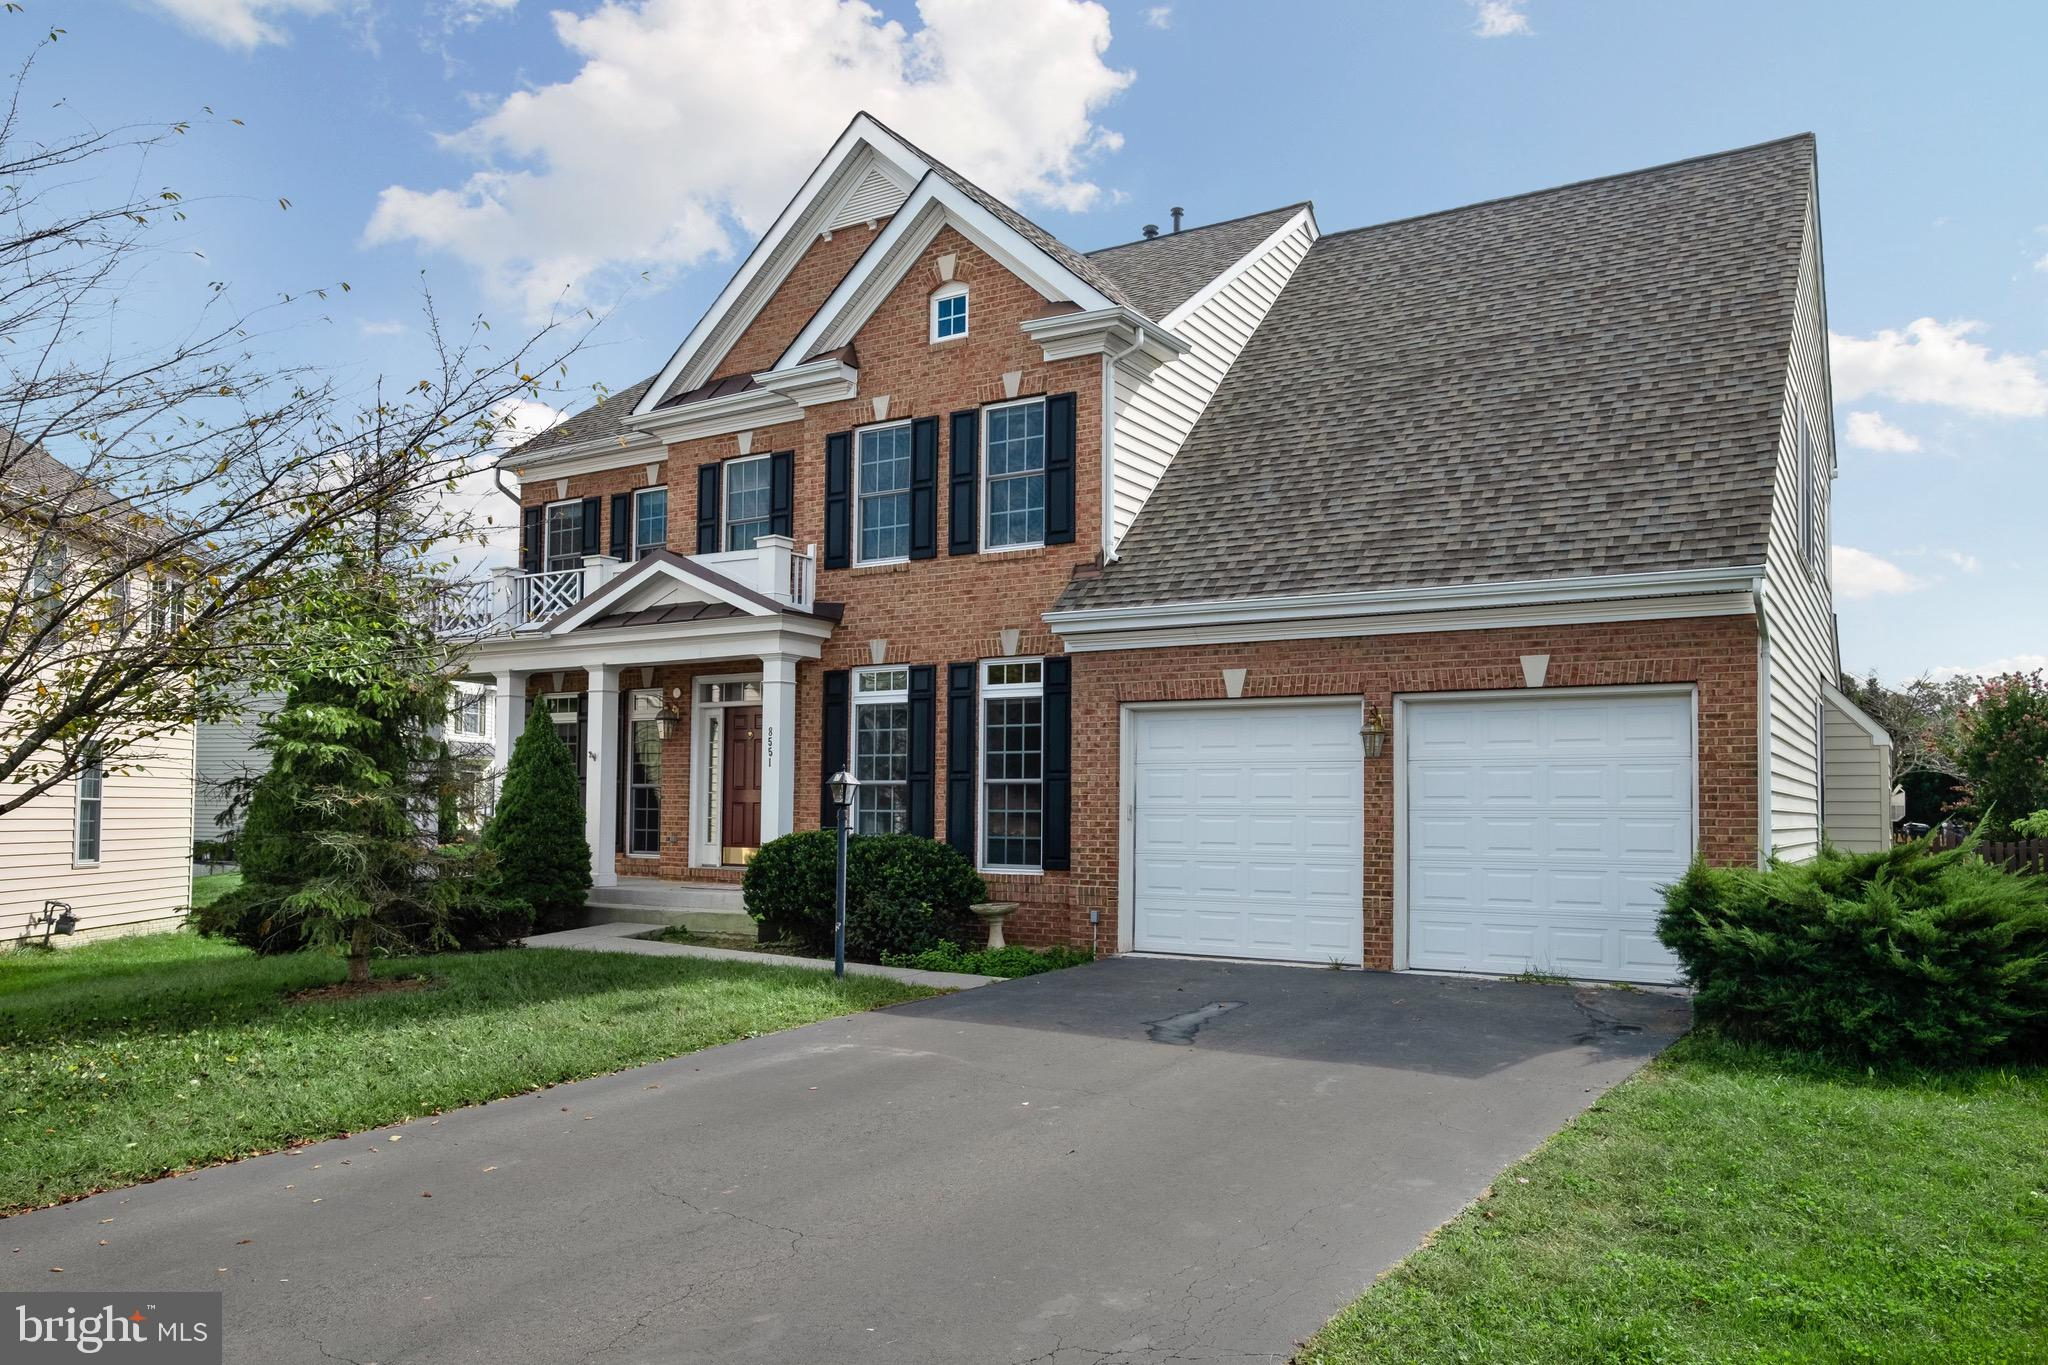 5bedroom colonial home with over 4,000 SQFT of living space on a cul-de-sac located in Coles Run Manor. Enjoy the outdoor space with a large low maintenance deck and a fenced in yard. Roof replaced in 2017 and HVAC in 2019. Upstairs loft area great for second family room or play space. Plenty of sunlight throughout the home. Kitchen flows into family room with sliding door to deck. Hardwood floors on most of the main level. Full bathroom and bedroom in basement great for visitors or extended family. Plenty of parking in long driveway and two car garage.